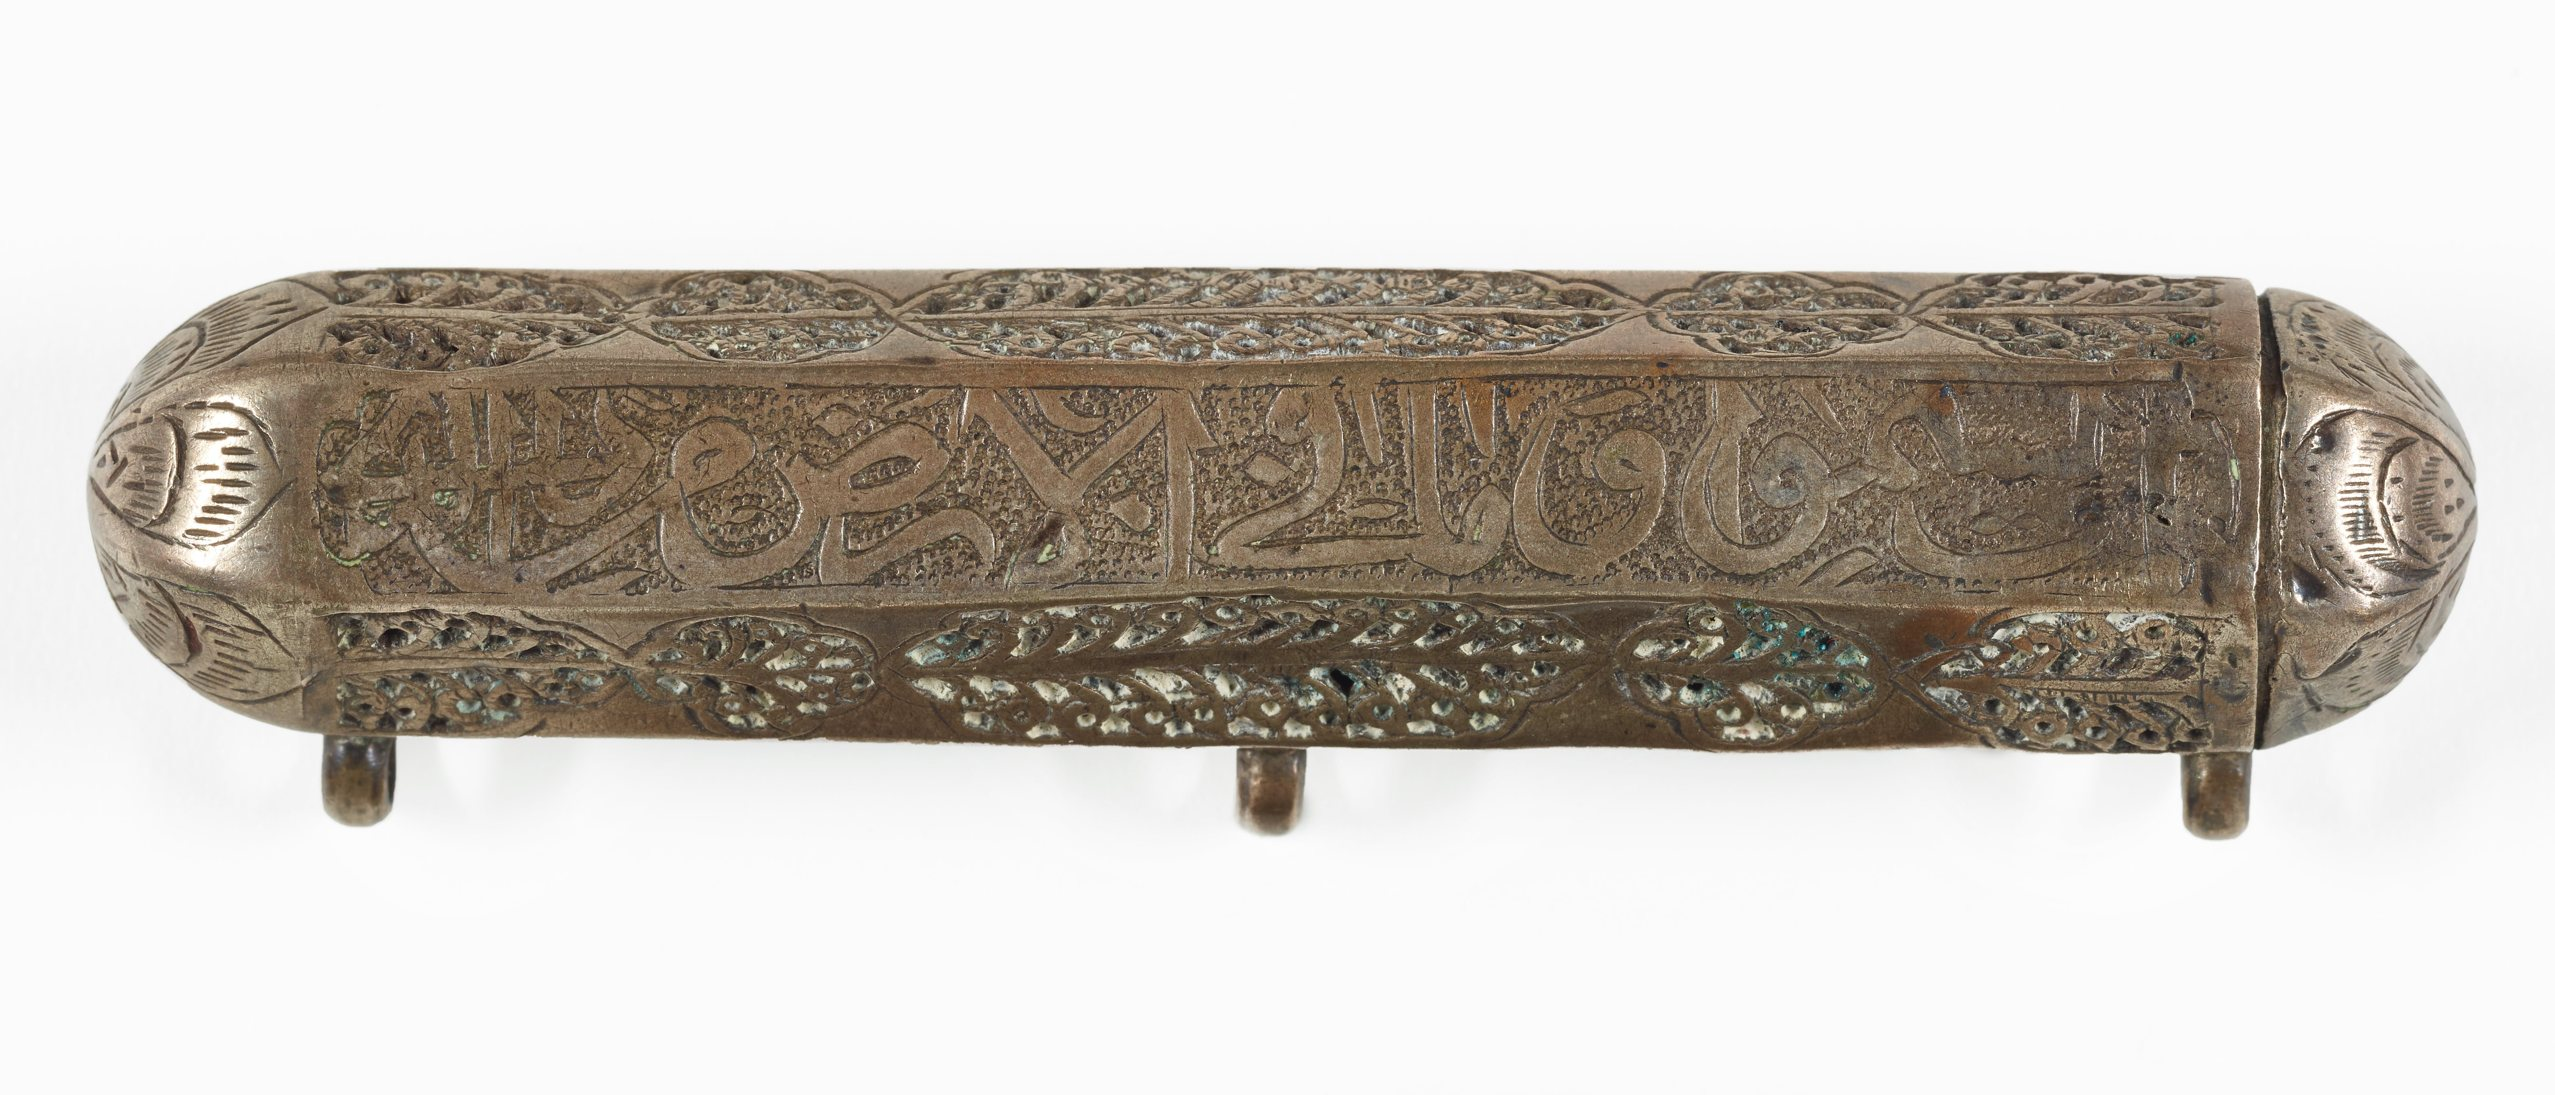 inscribed amulet case